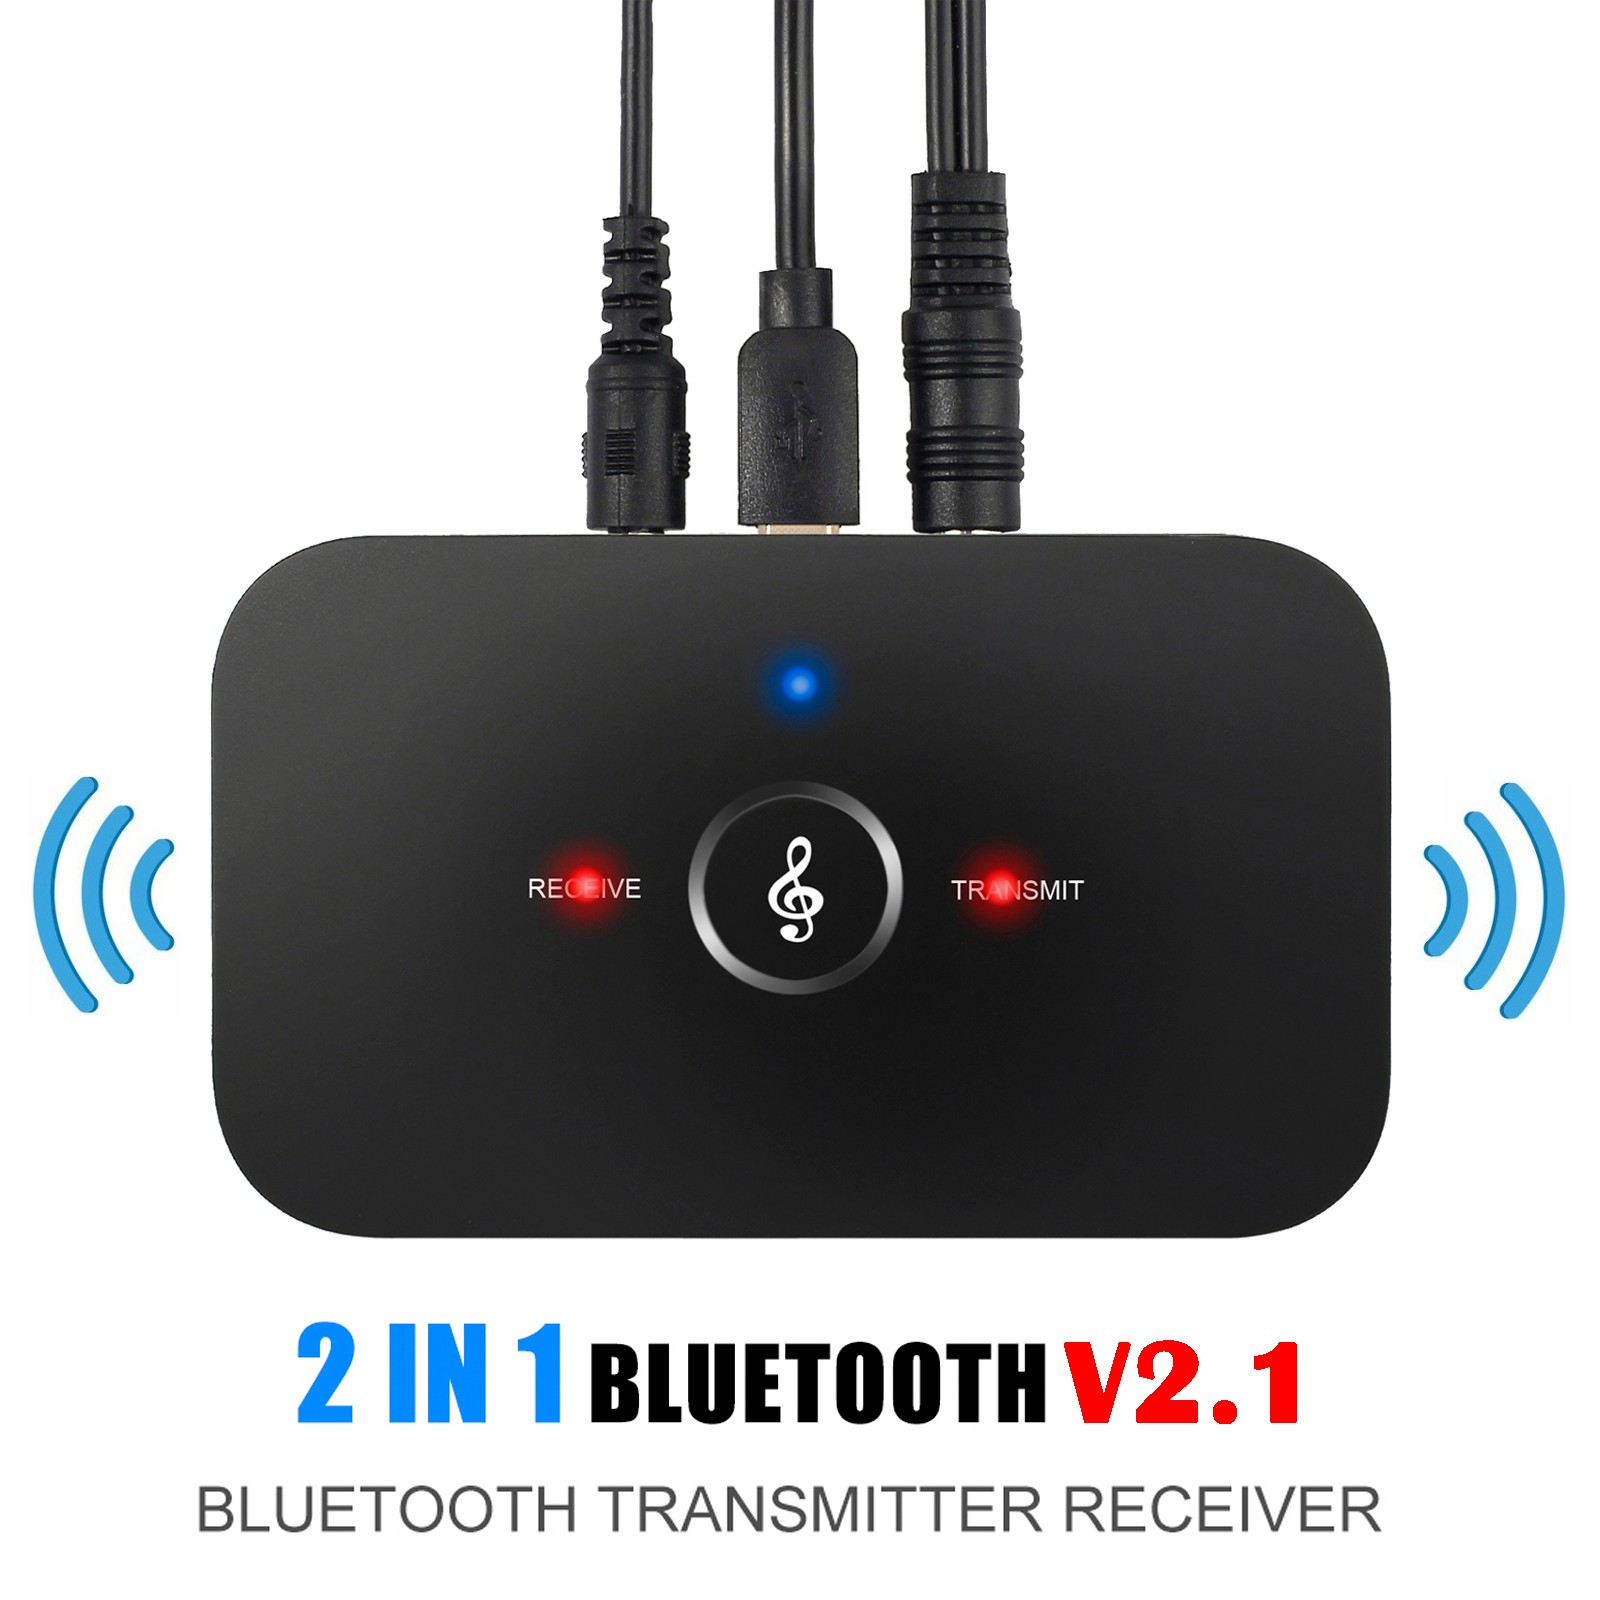 Bluetooth Transmitter and Receiver HIFI Stereo Audio Adapter with 3.5mm RCA Stereo Port For TV PC Music Streaming Sound Speakers Headphone MP3 MP4